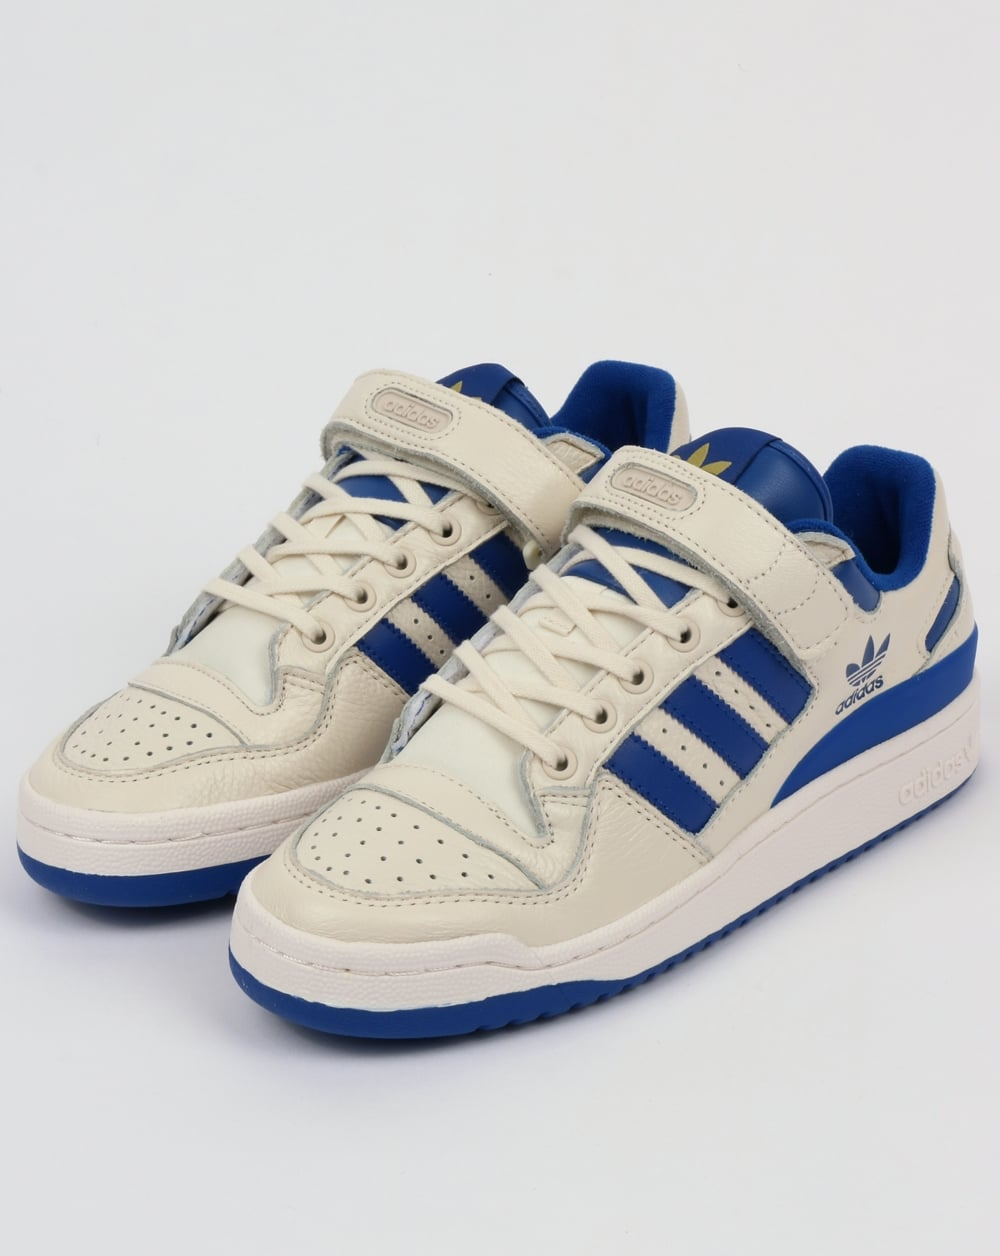 be28d3994cc8f3 Adidas Forum Lo Trainers White Royal